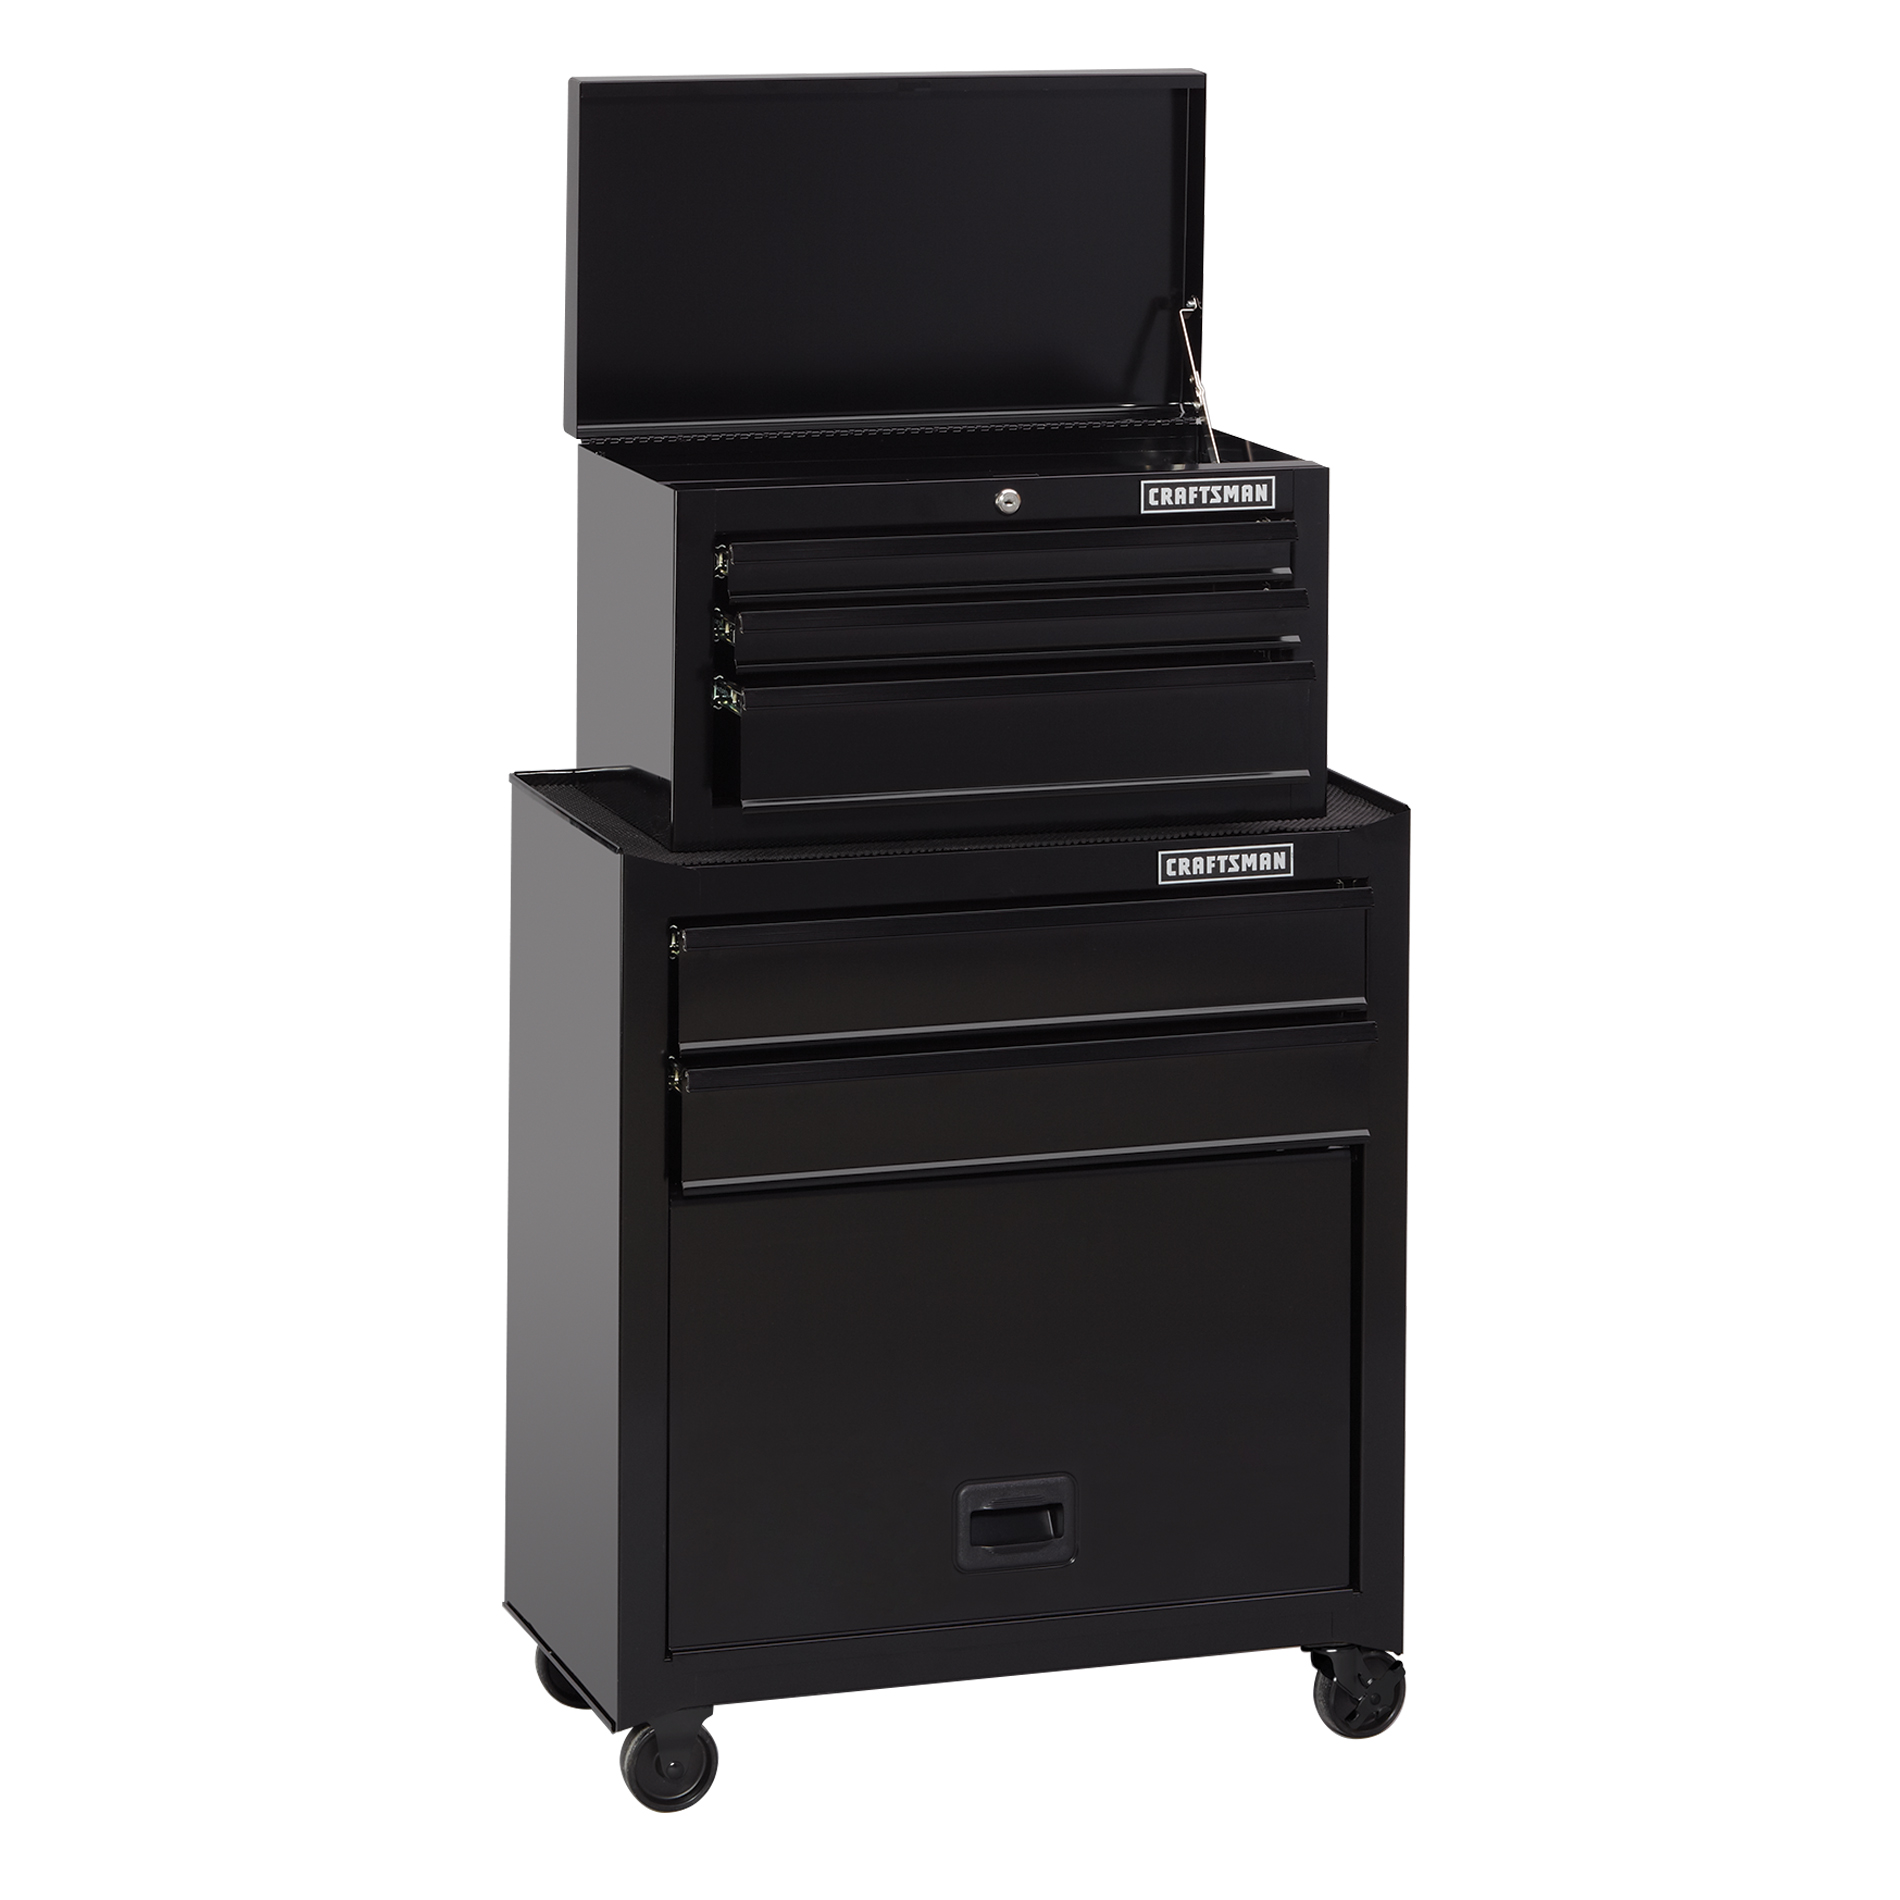 "Craftsman 26"""" Wide 5-Drawer Standard-Duty Tool Chest and Cabinet - Black"